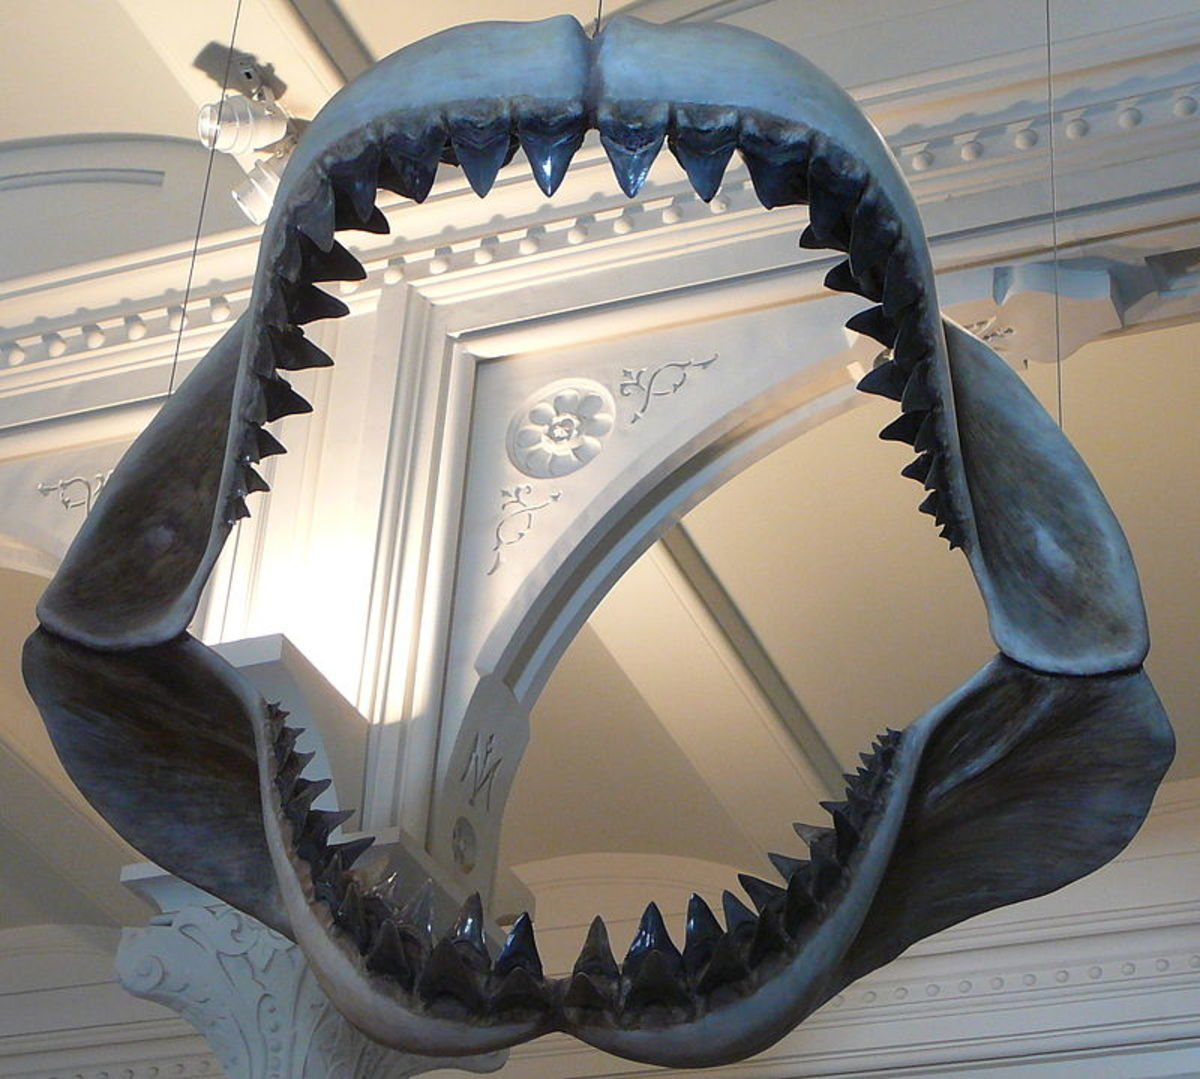 A reconstruction of the largest set of Shark teeth that has ever existed.